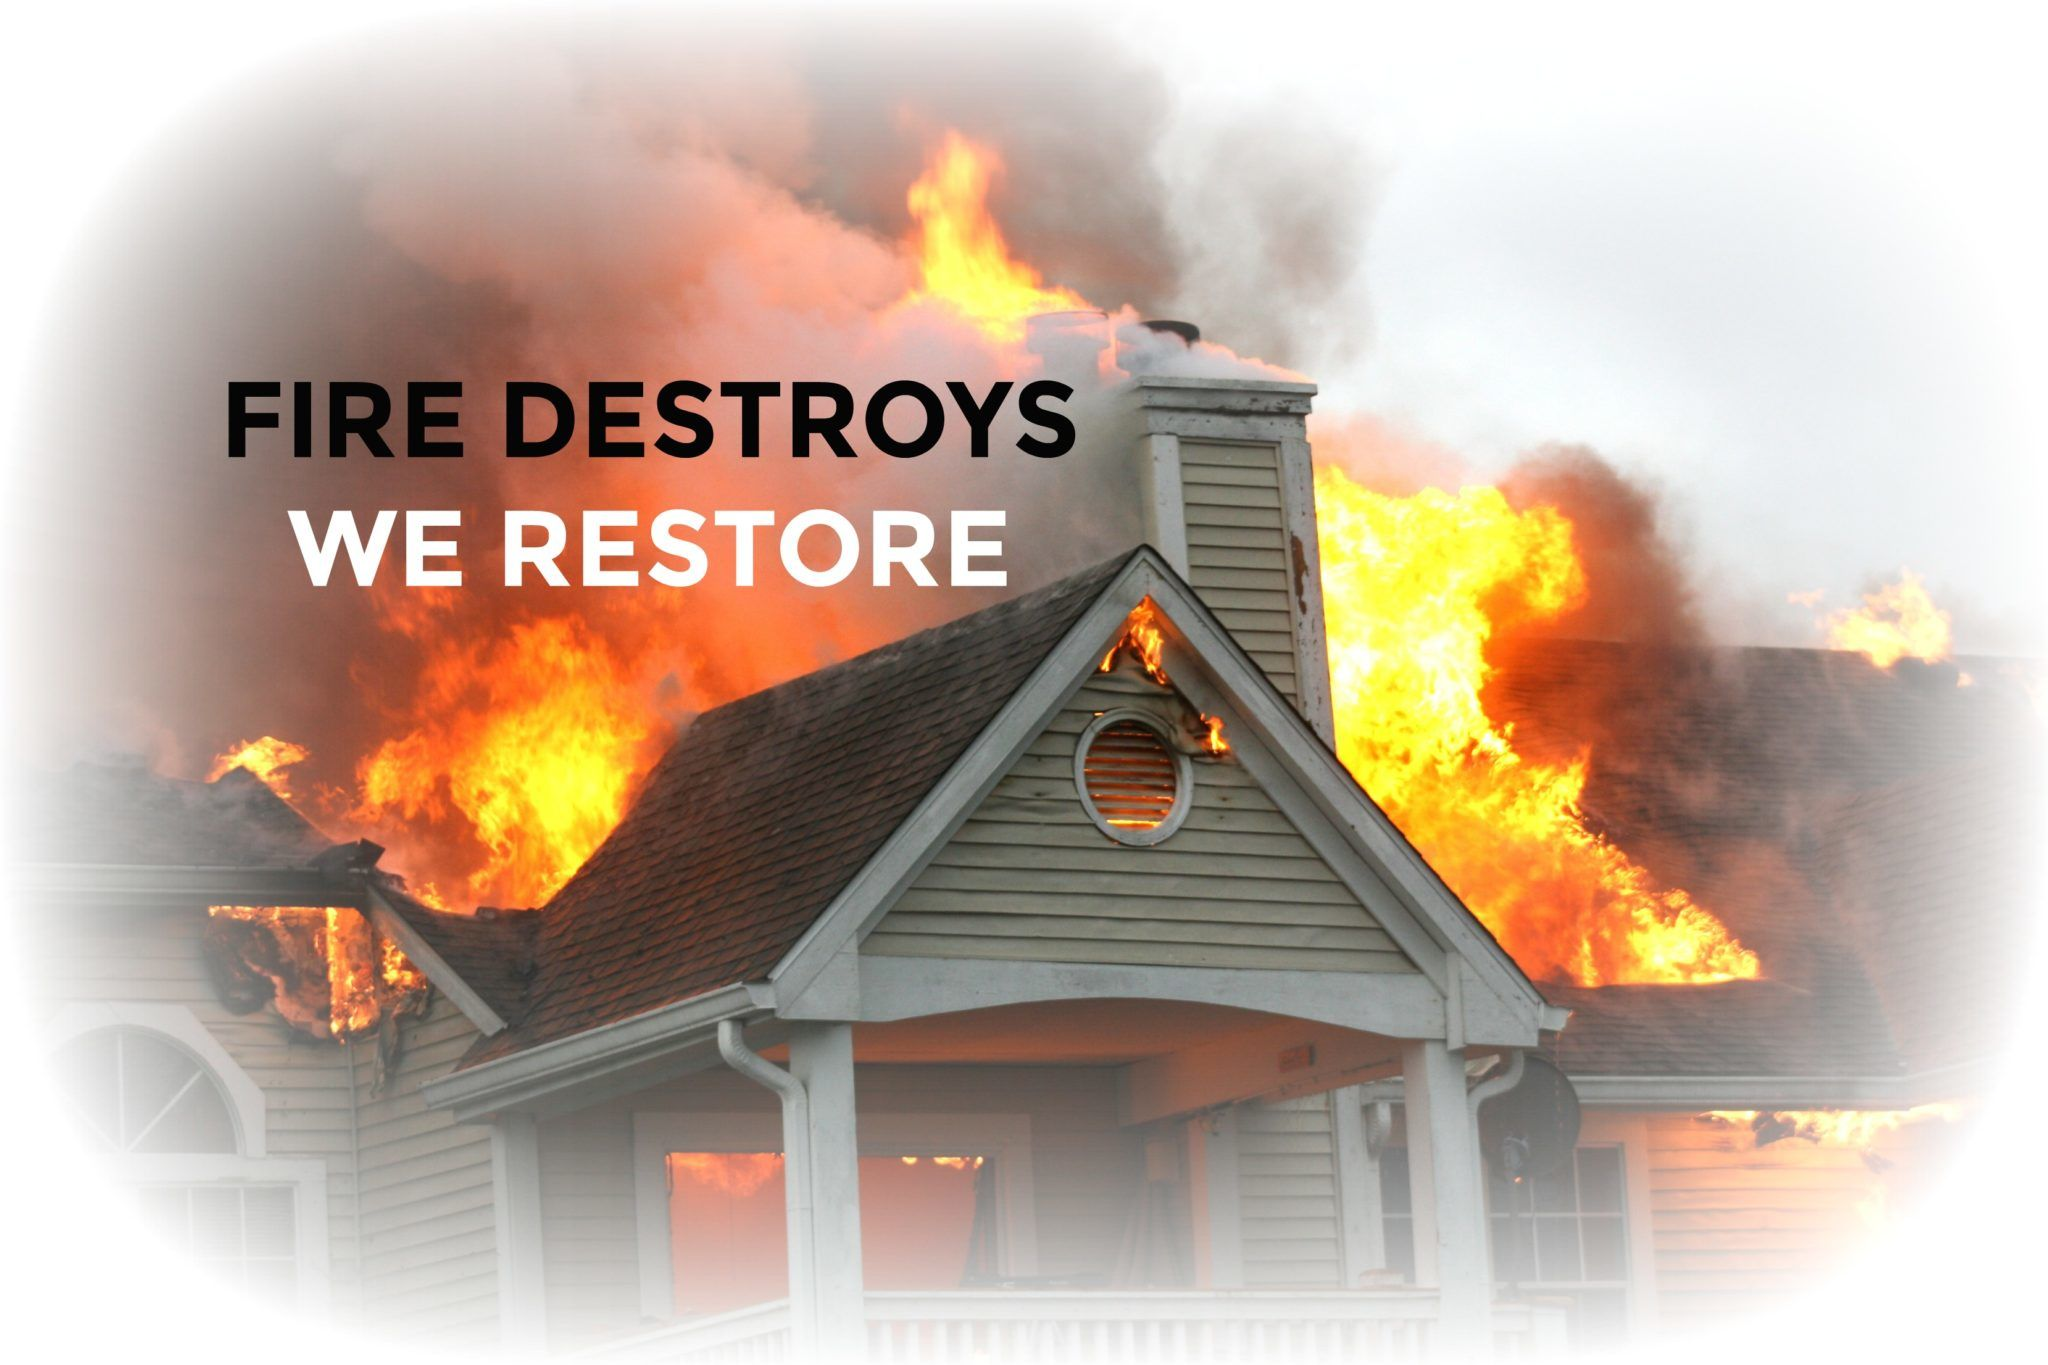 Fire Destroys We Restore